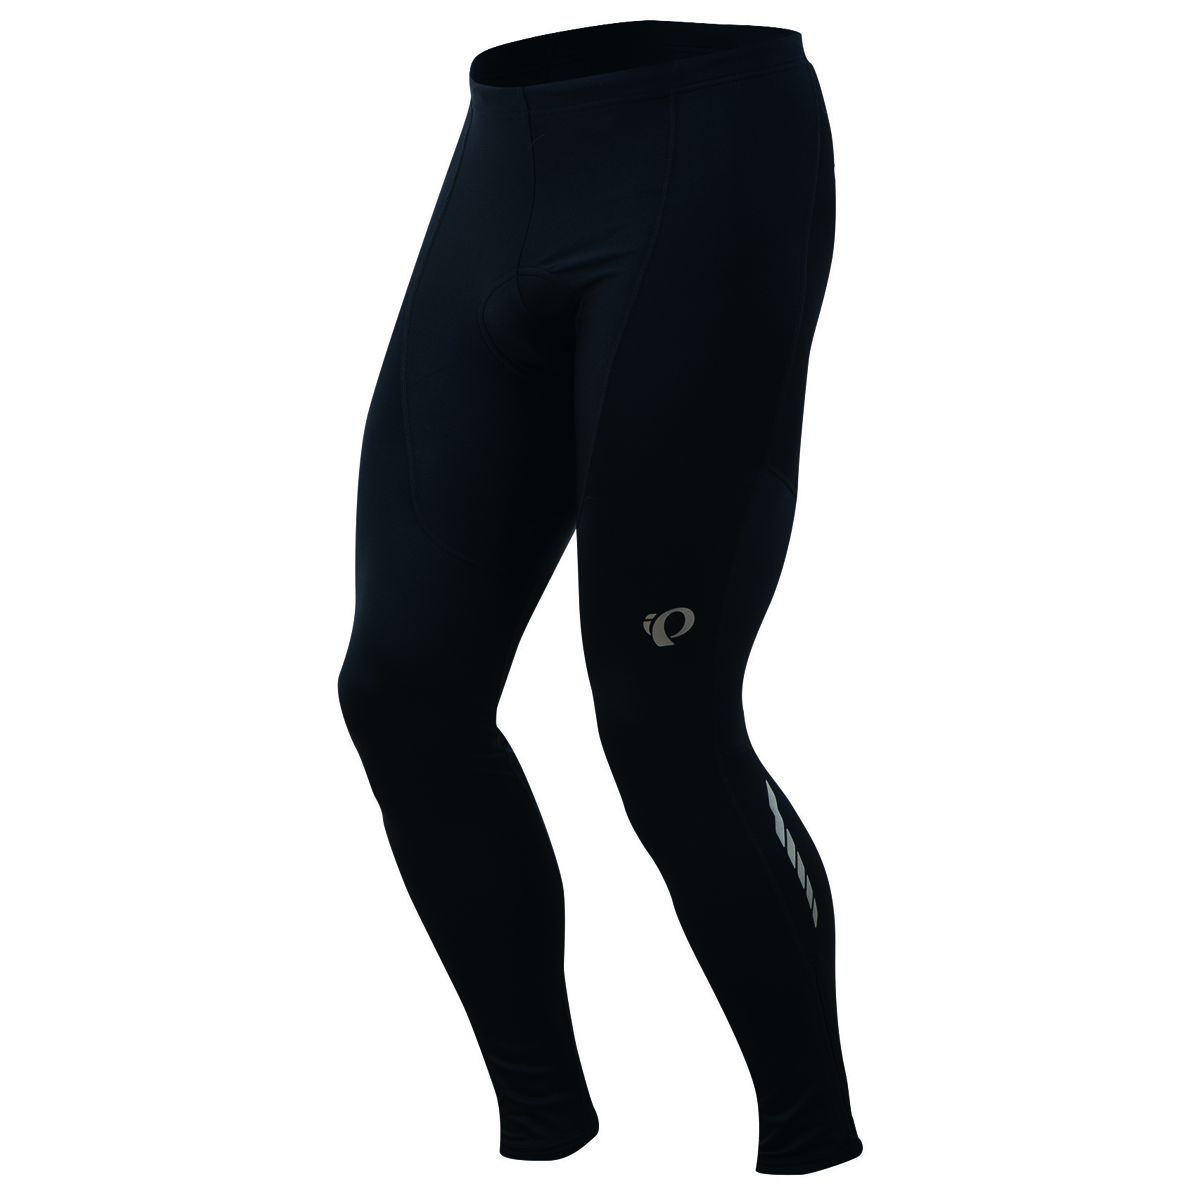 Pearl Izumi - Rajtuzy Row Thermal Select Kolor Czarny L